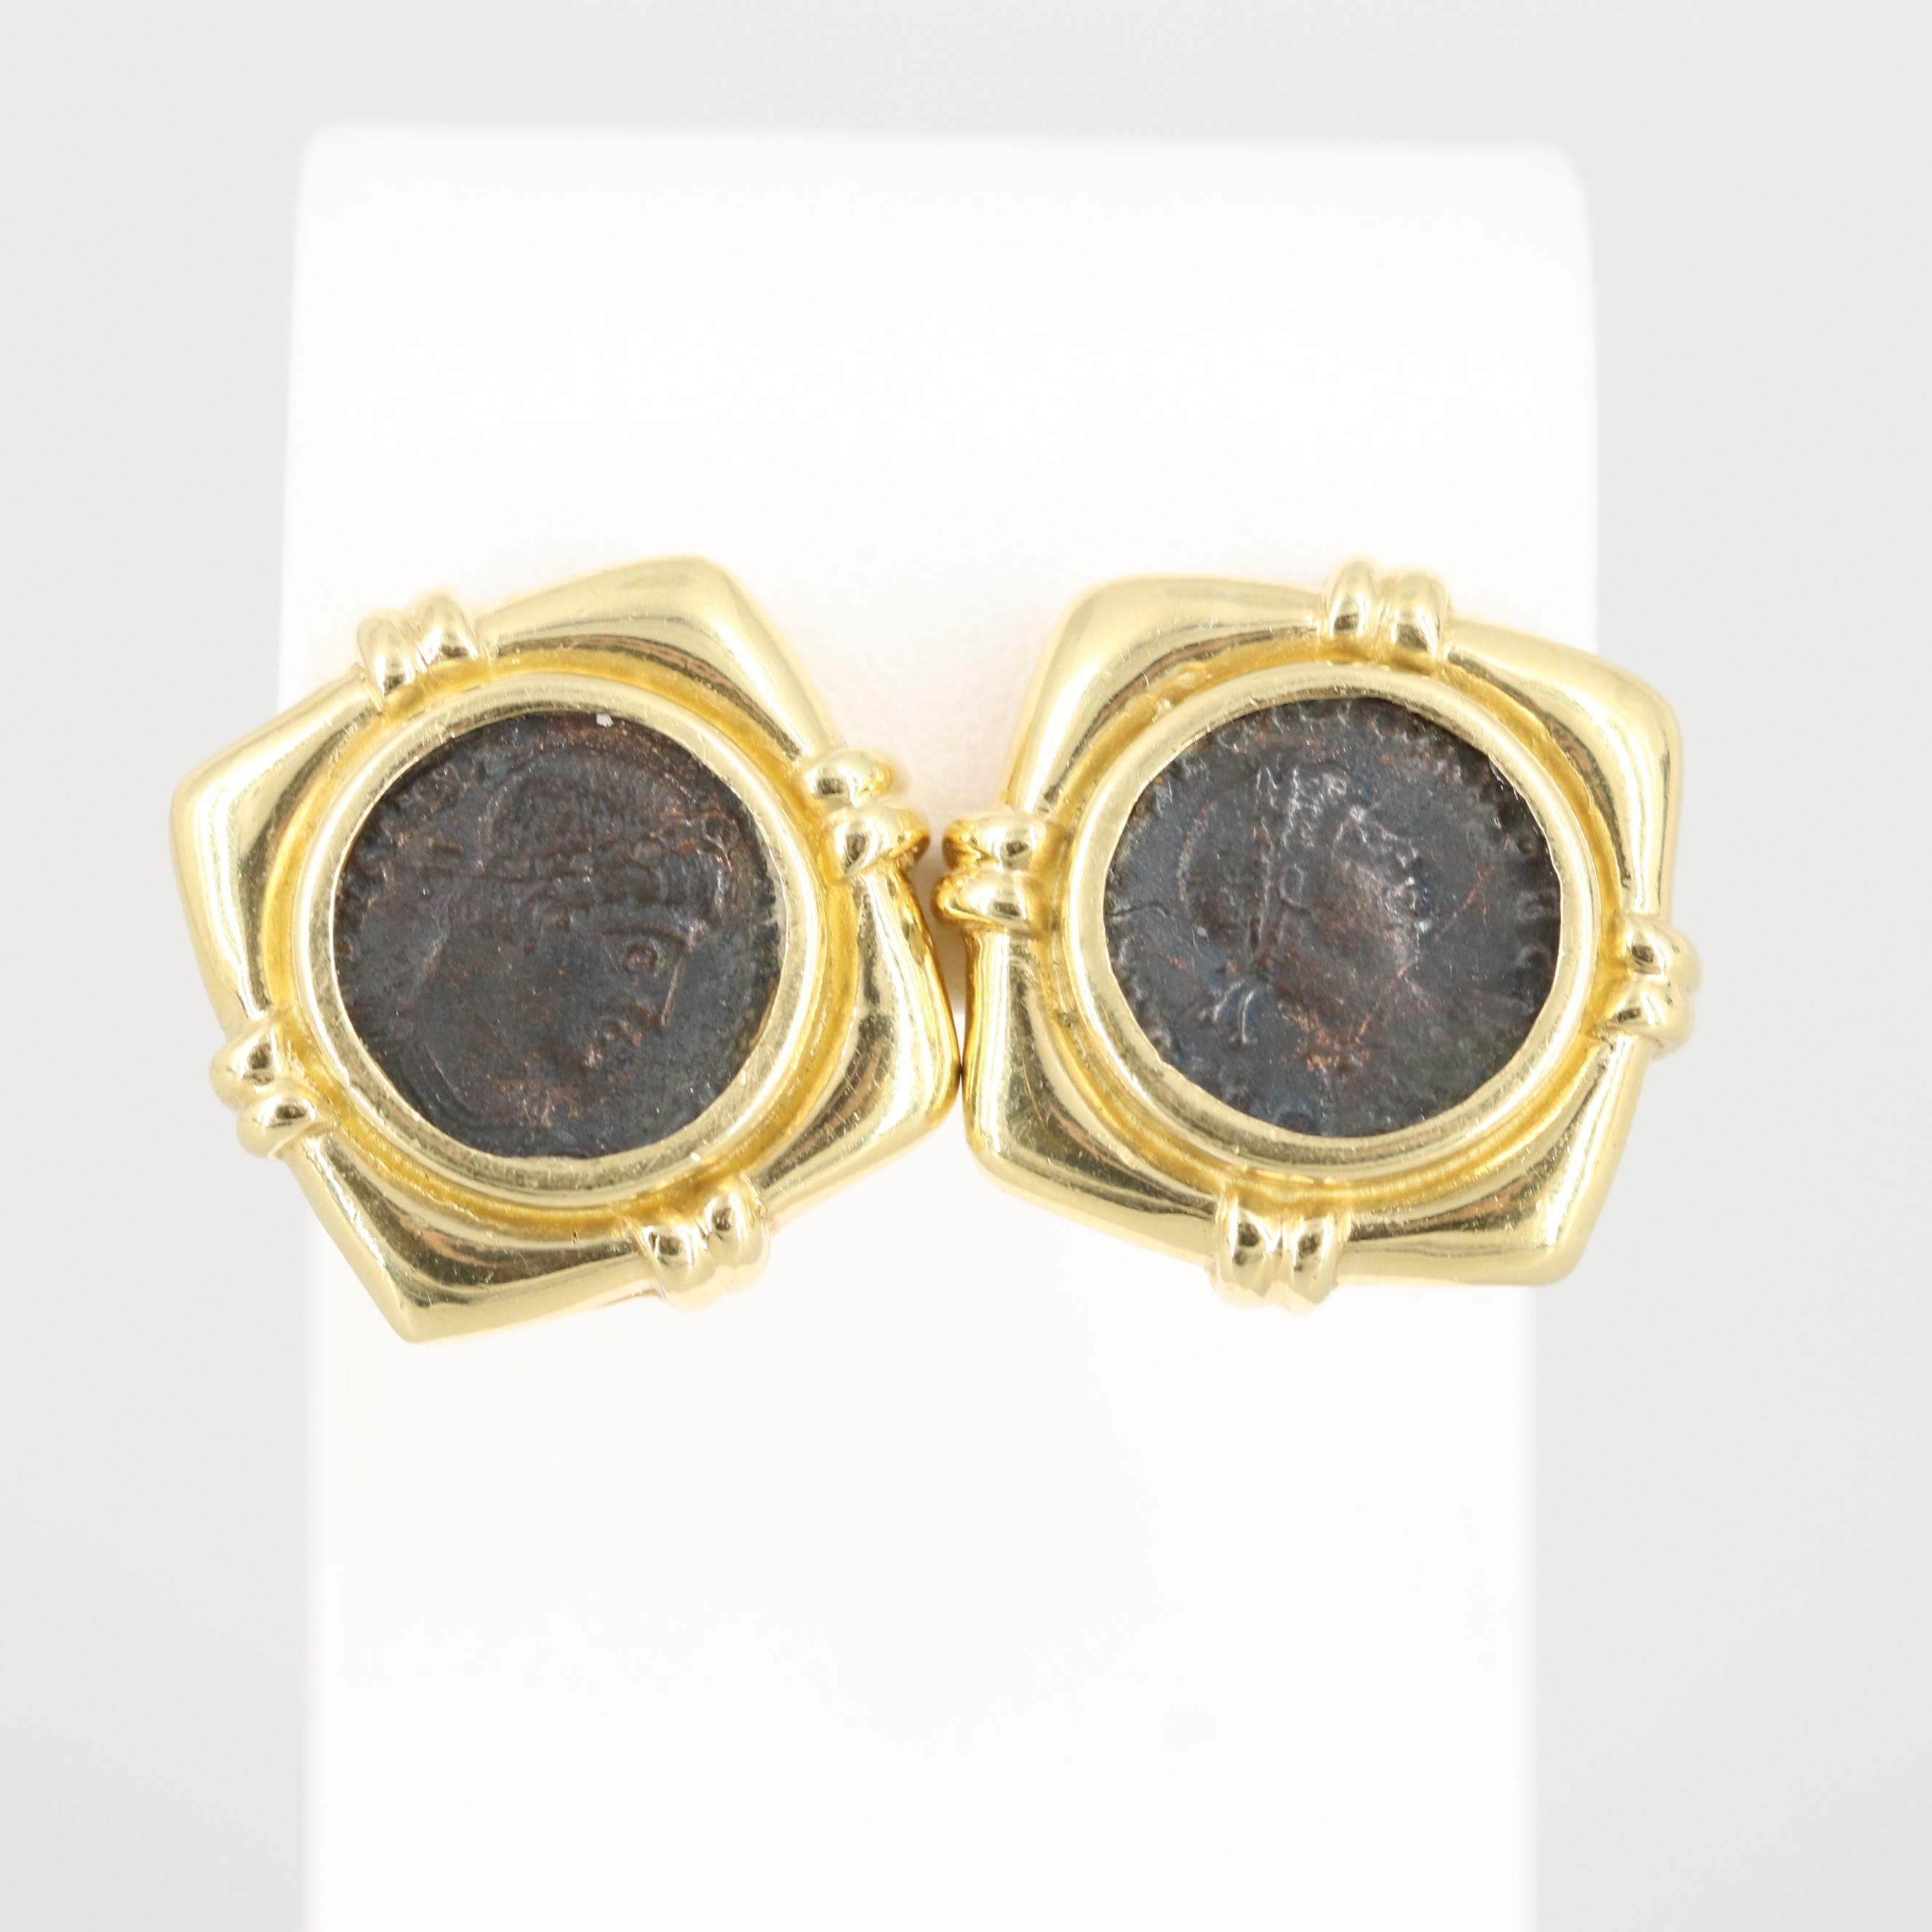 18K Yellow Gold Earrings with Two Ancient Roman Imperial AE4 Nummus Coins